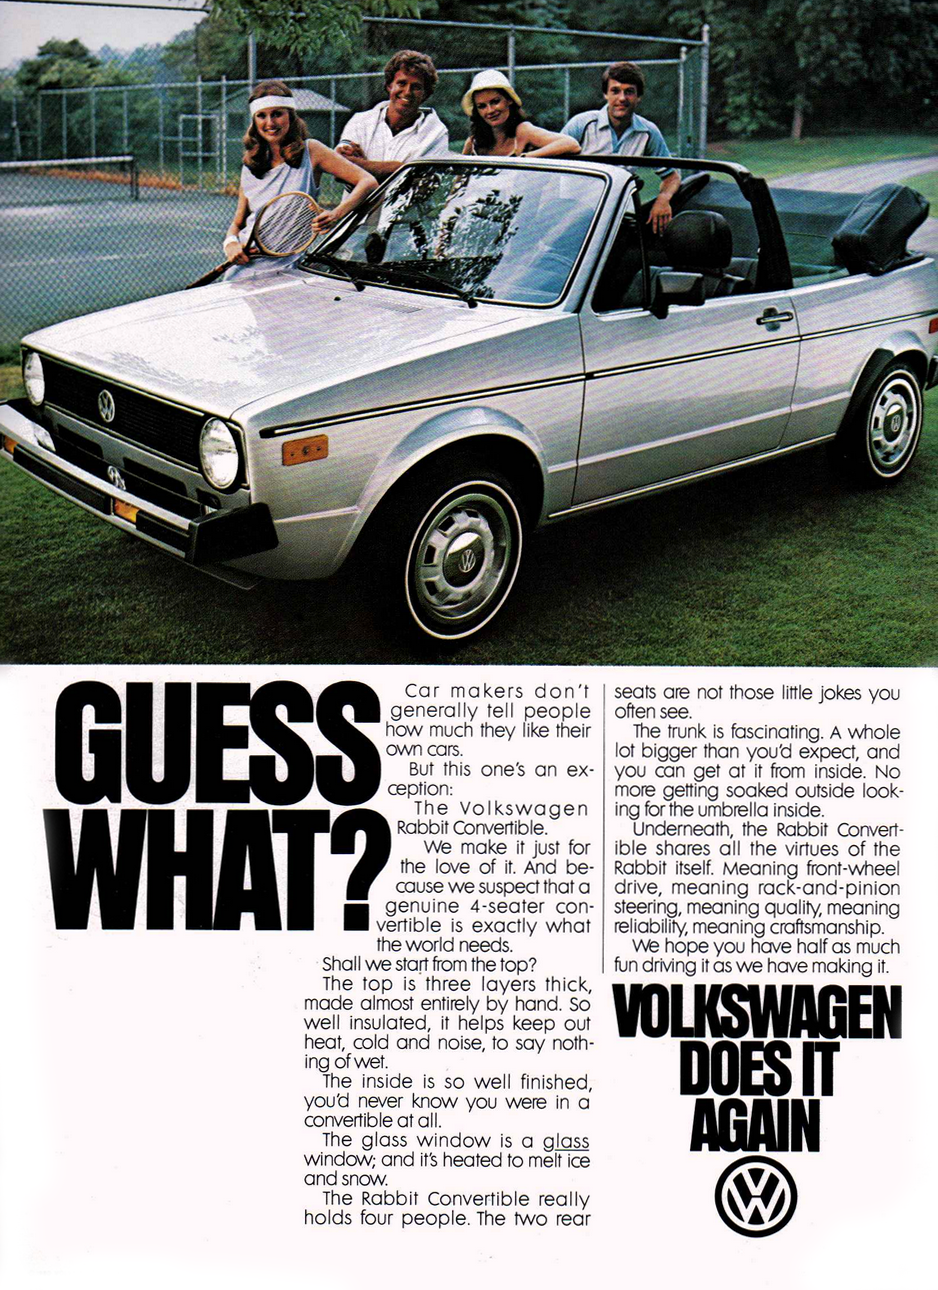 1986 Volkswagen Rabbit Convertible Ad